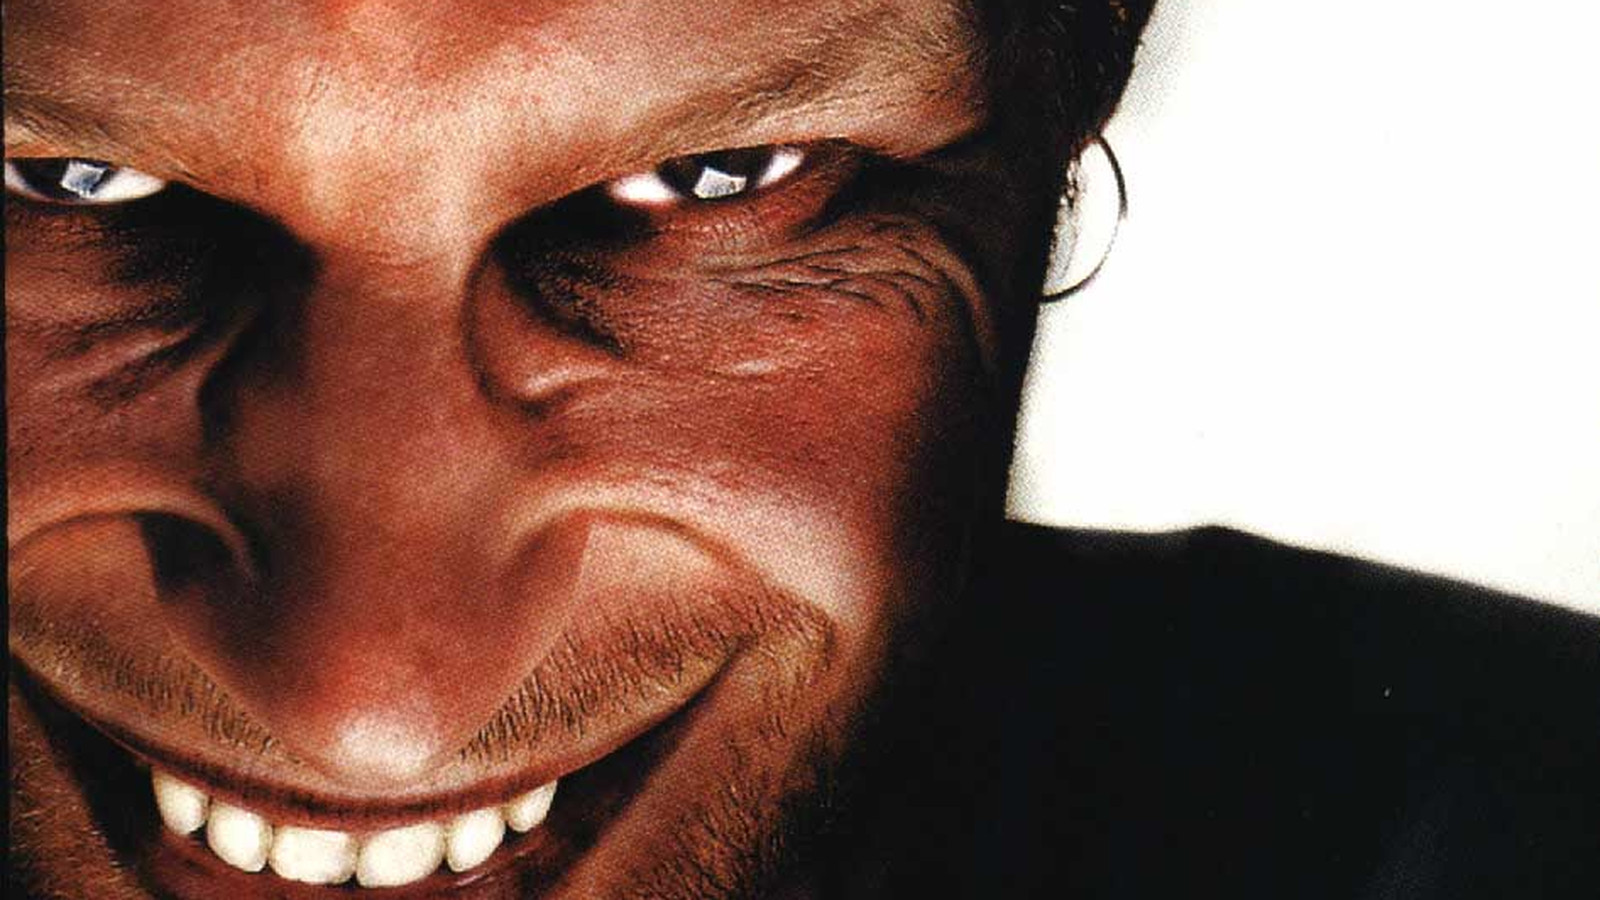 Aphex Twin Releasing Rare Unheard Album Thanks To